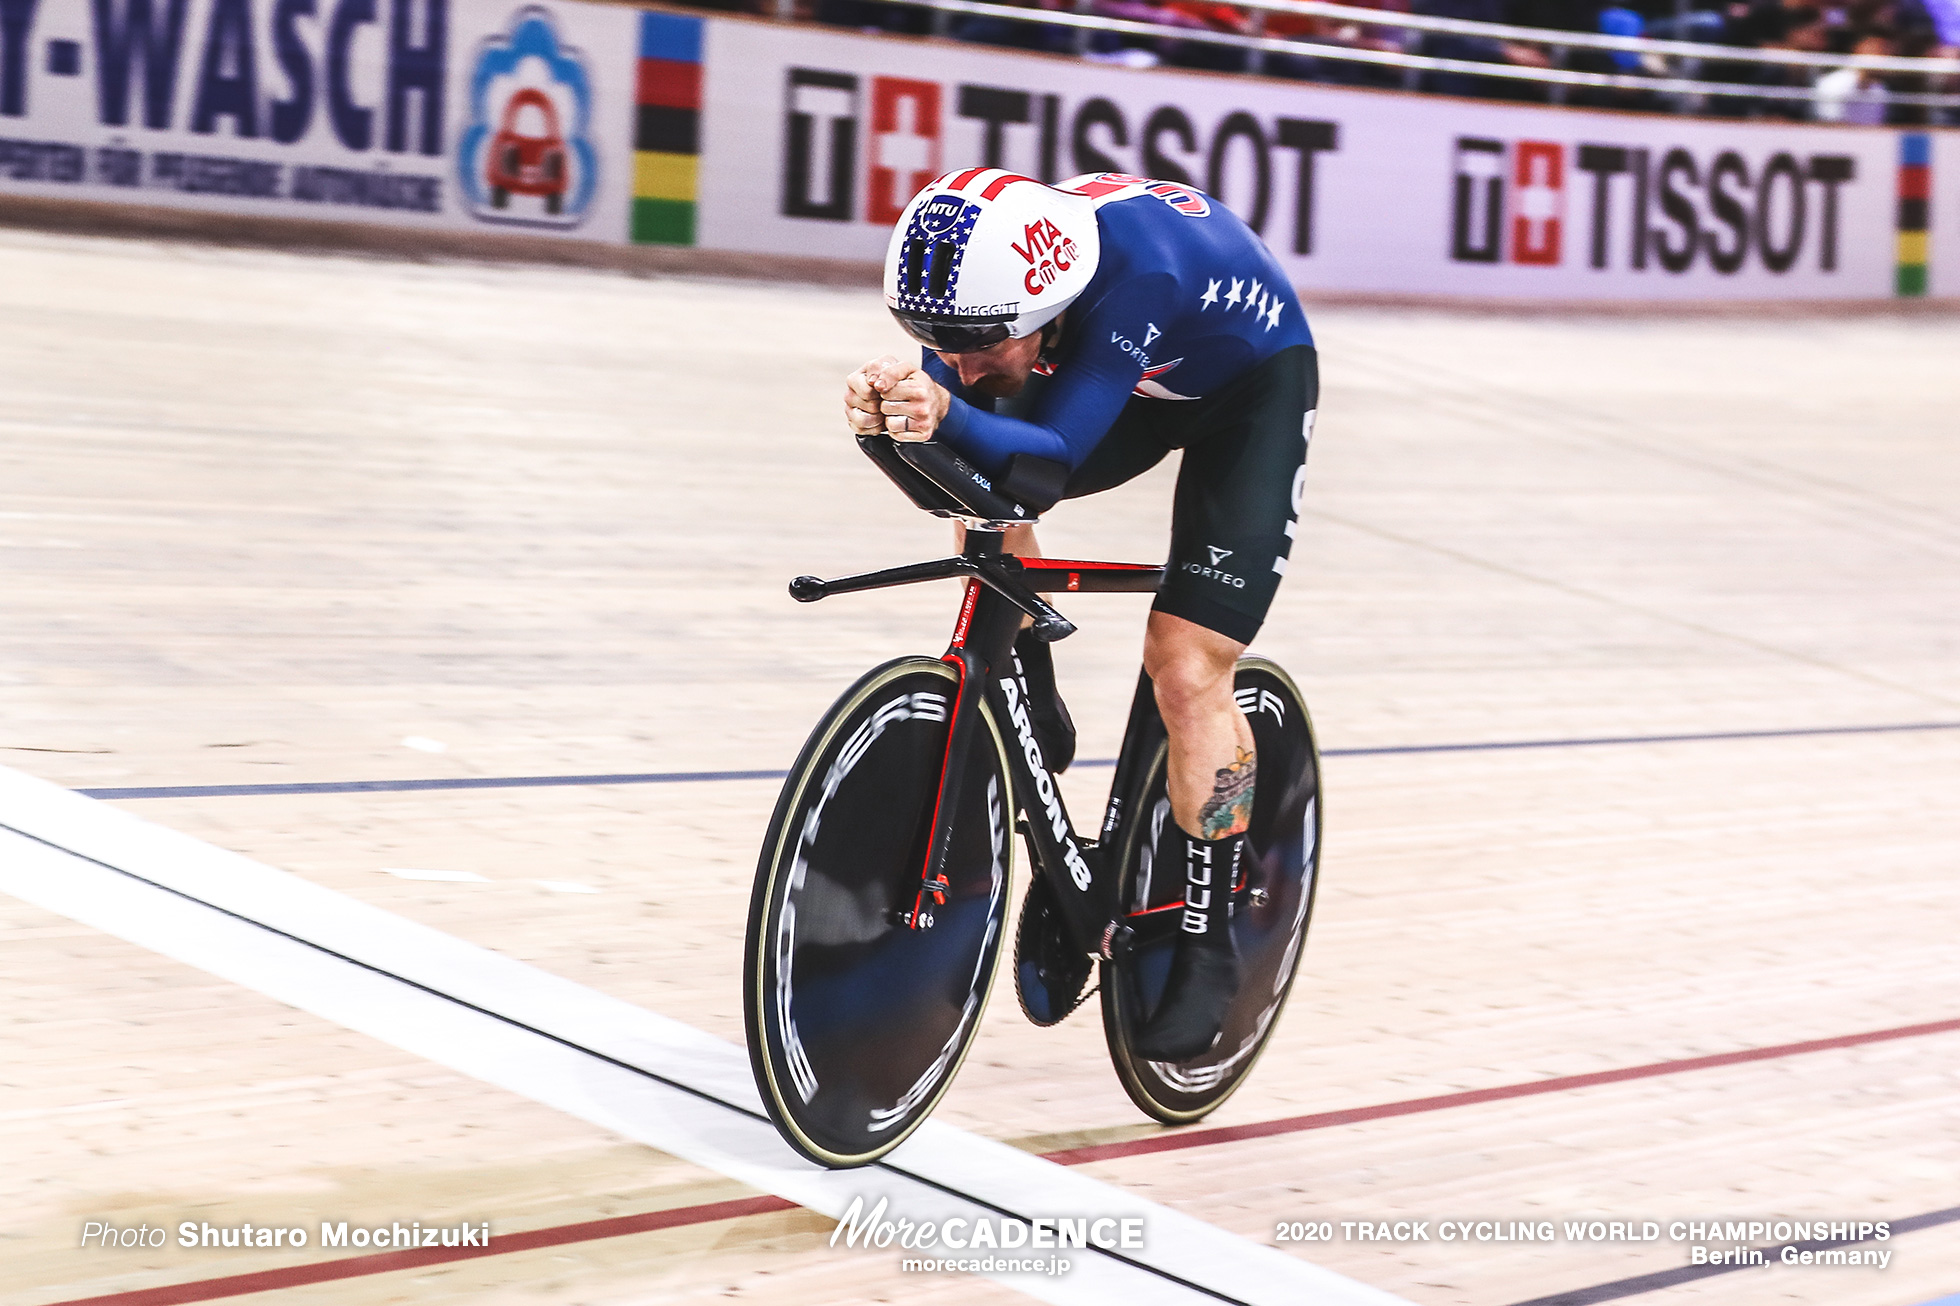 Ashton Lambie, Men's Individual Pursuit / 2020 Track Cycling World Championships, アシュトン・ランビー